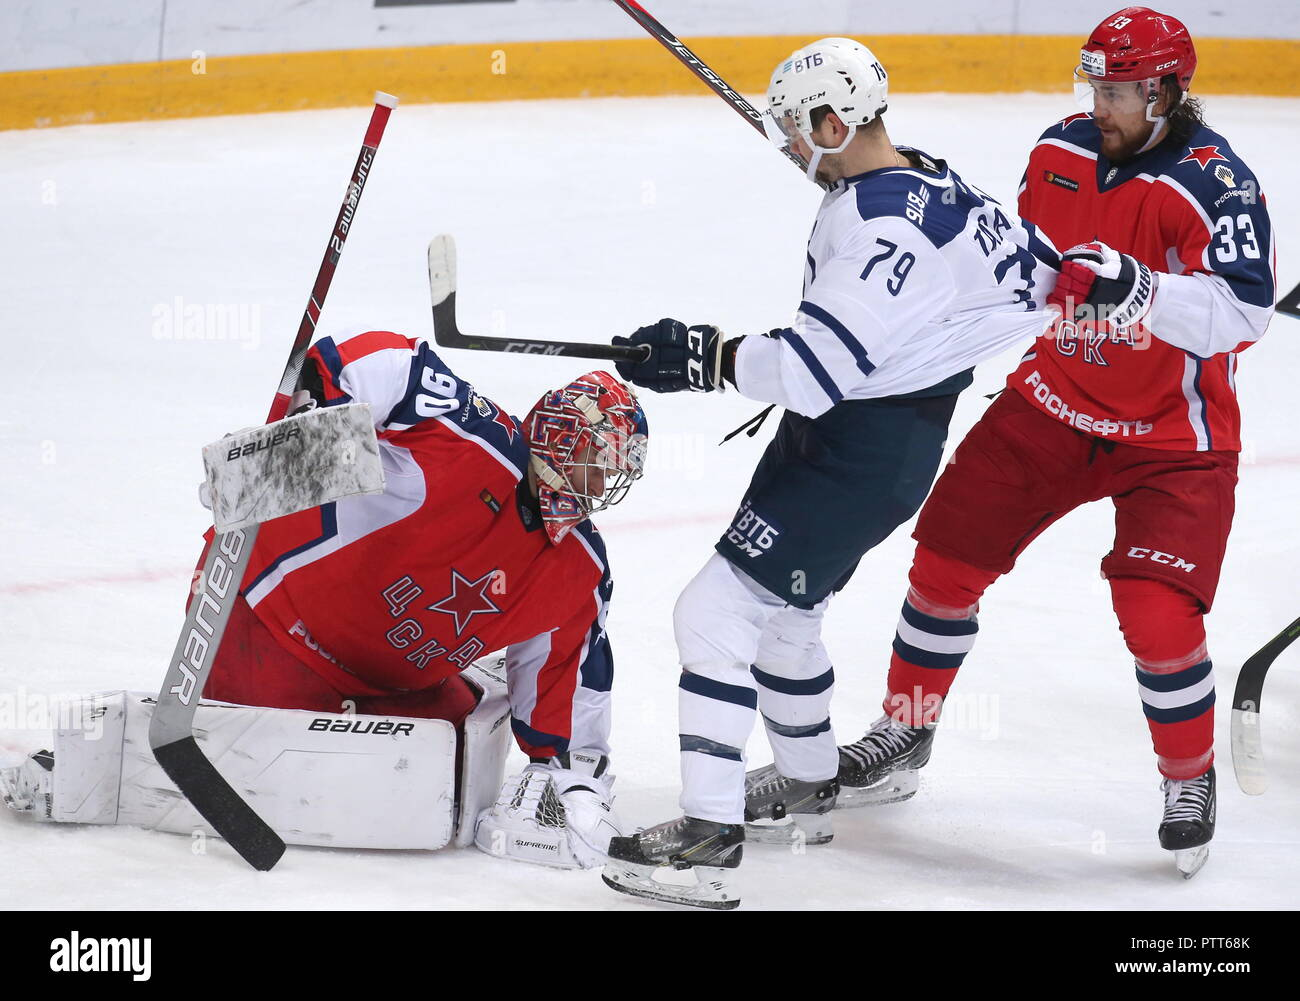 KHL in 2018-2019 year: teams, schedule, start of the season 91